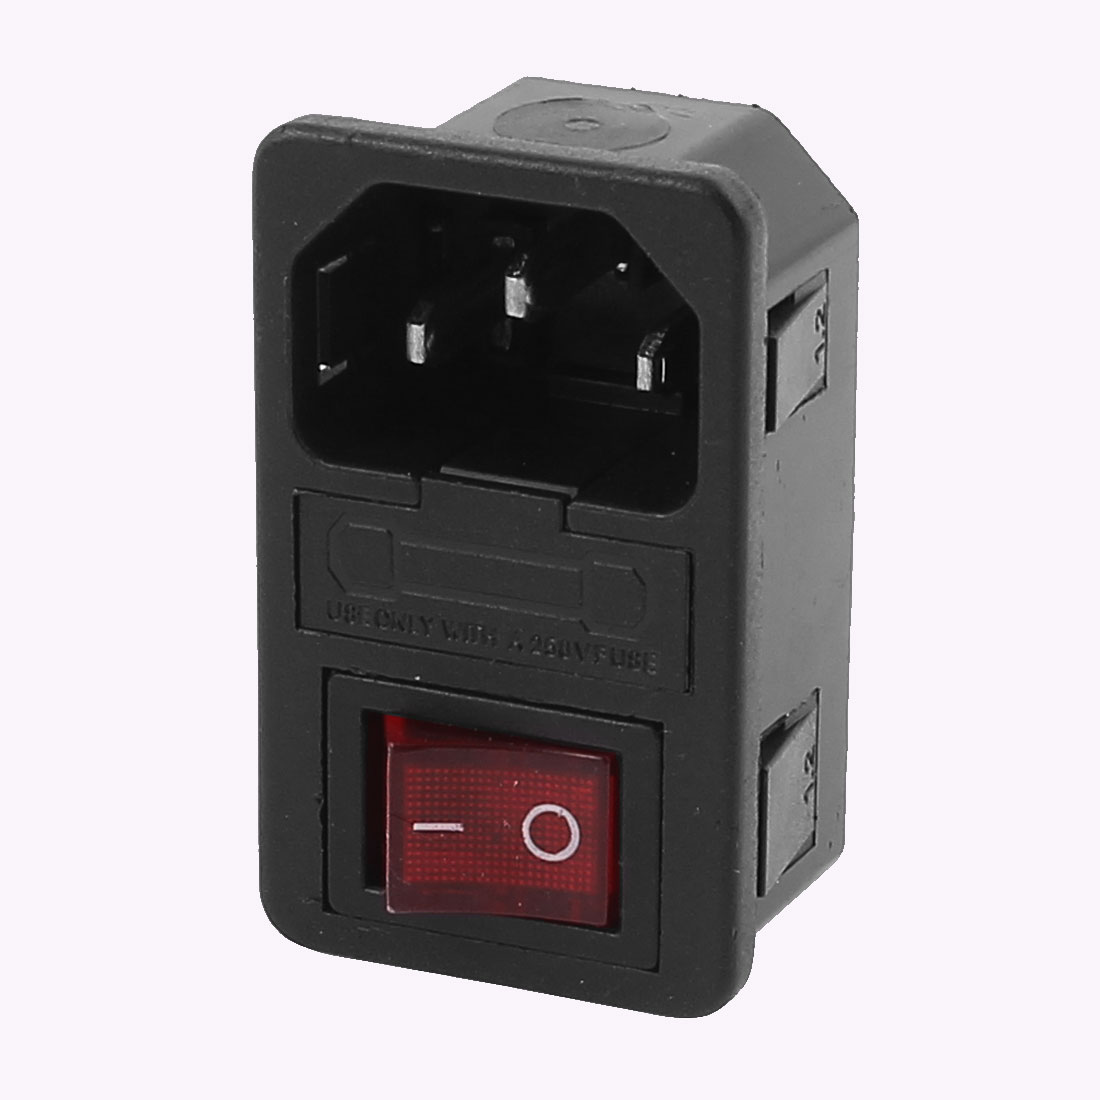 AC 250V 10A 4 Terminals Red LED Rocker Switch Inlet Power Socket w Fuse Holder